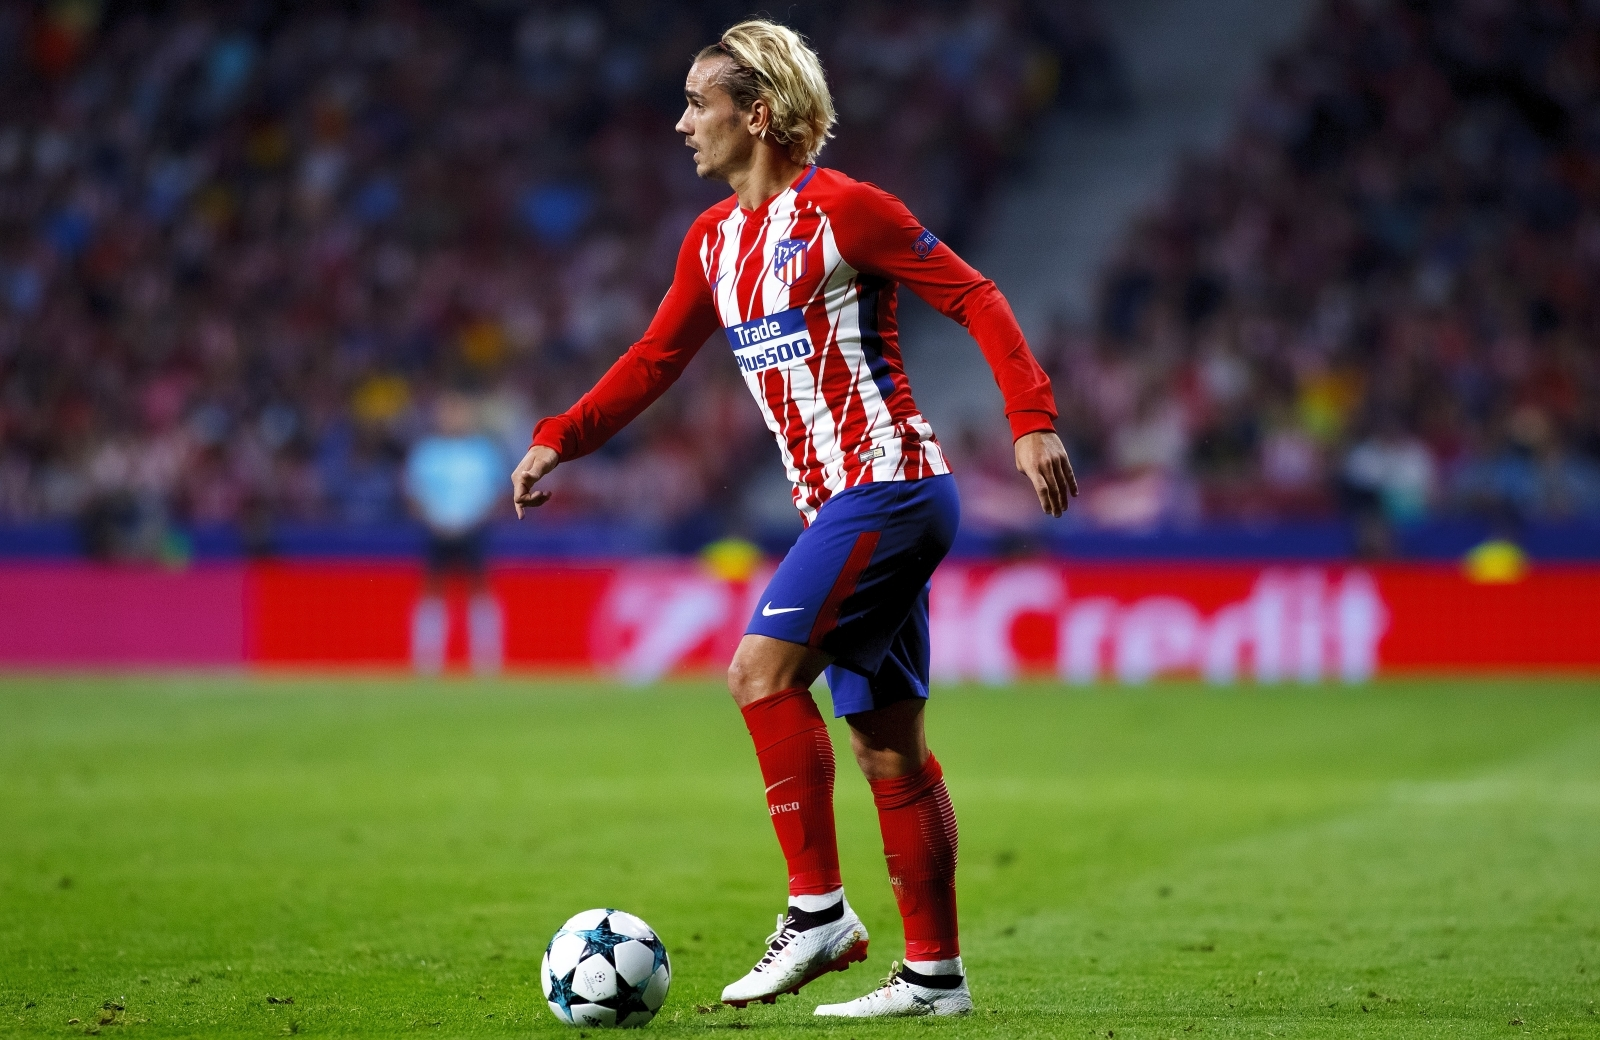 Diego Simeone explains why he never feared Antoine Griezmann would